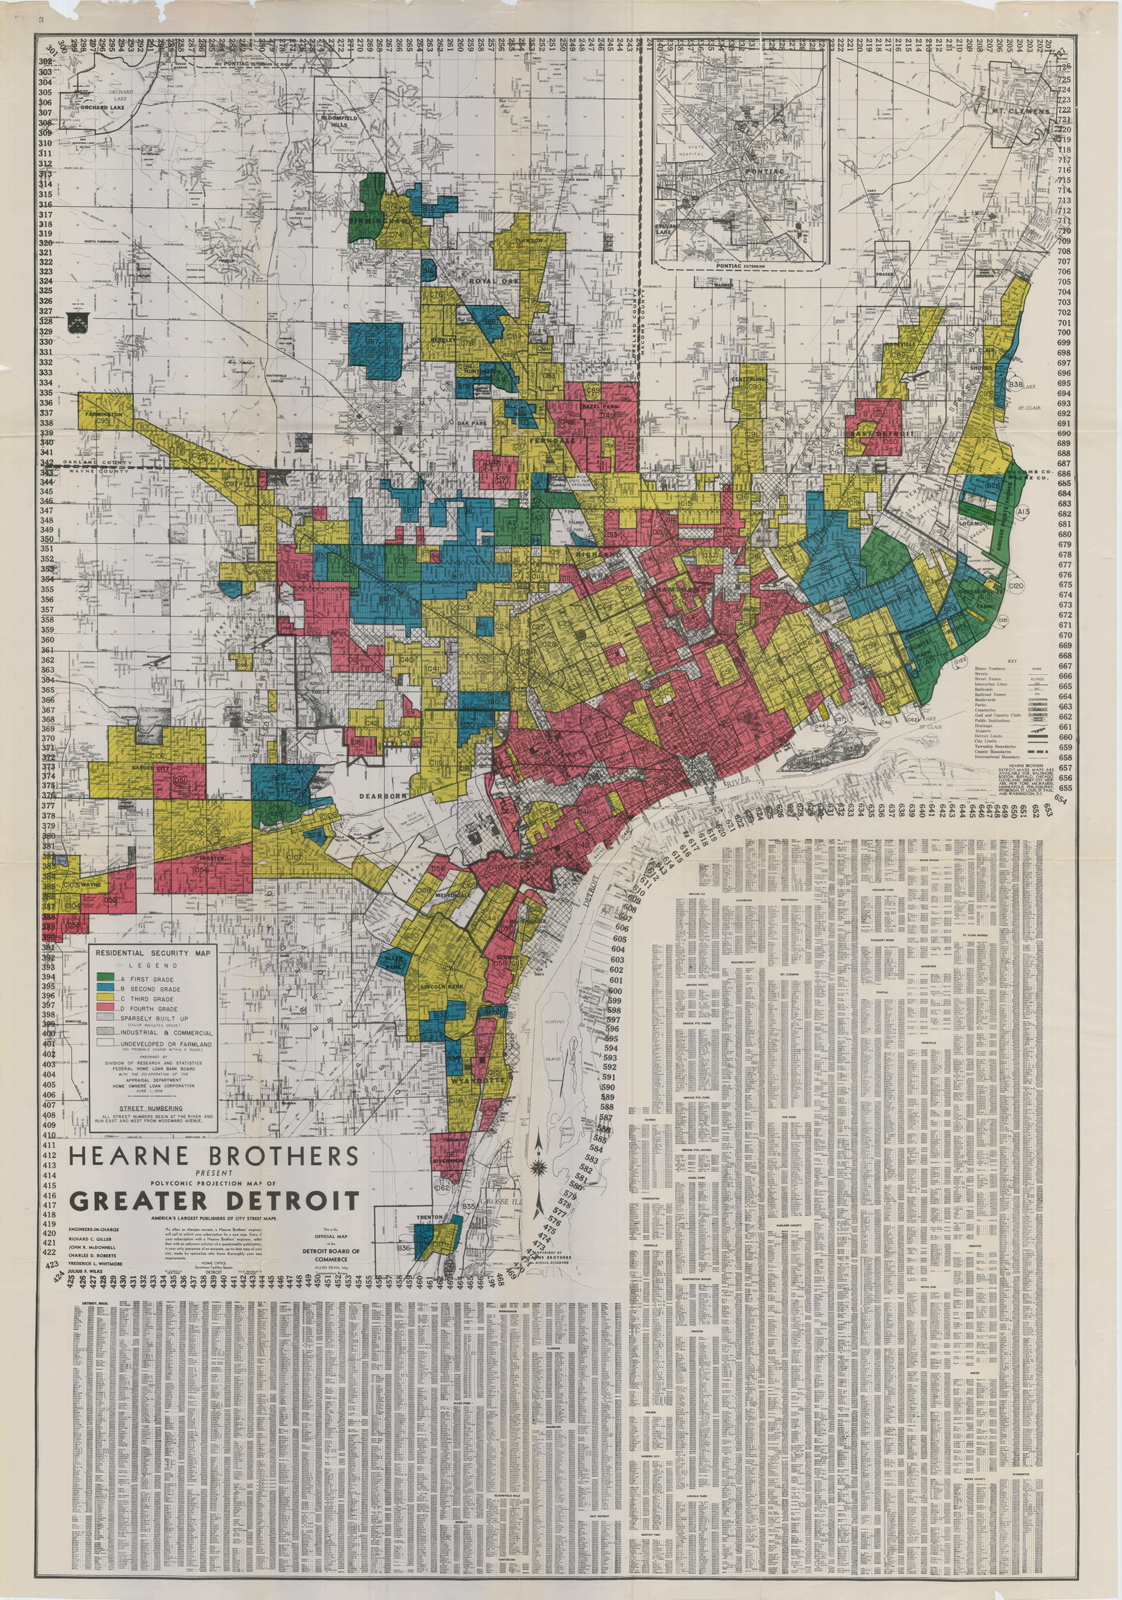 Photo 5 of 6 in 21 Resources on Redlining's Role in Cementing the American Wealth Gap